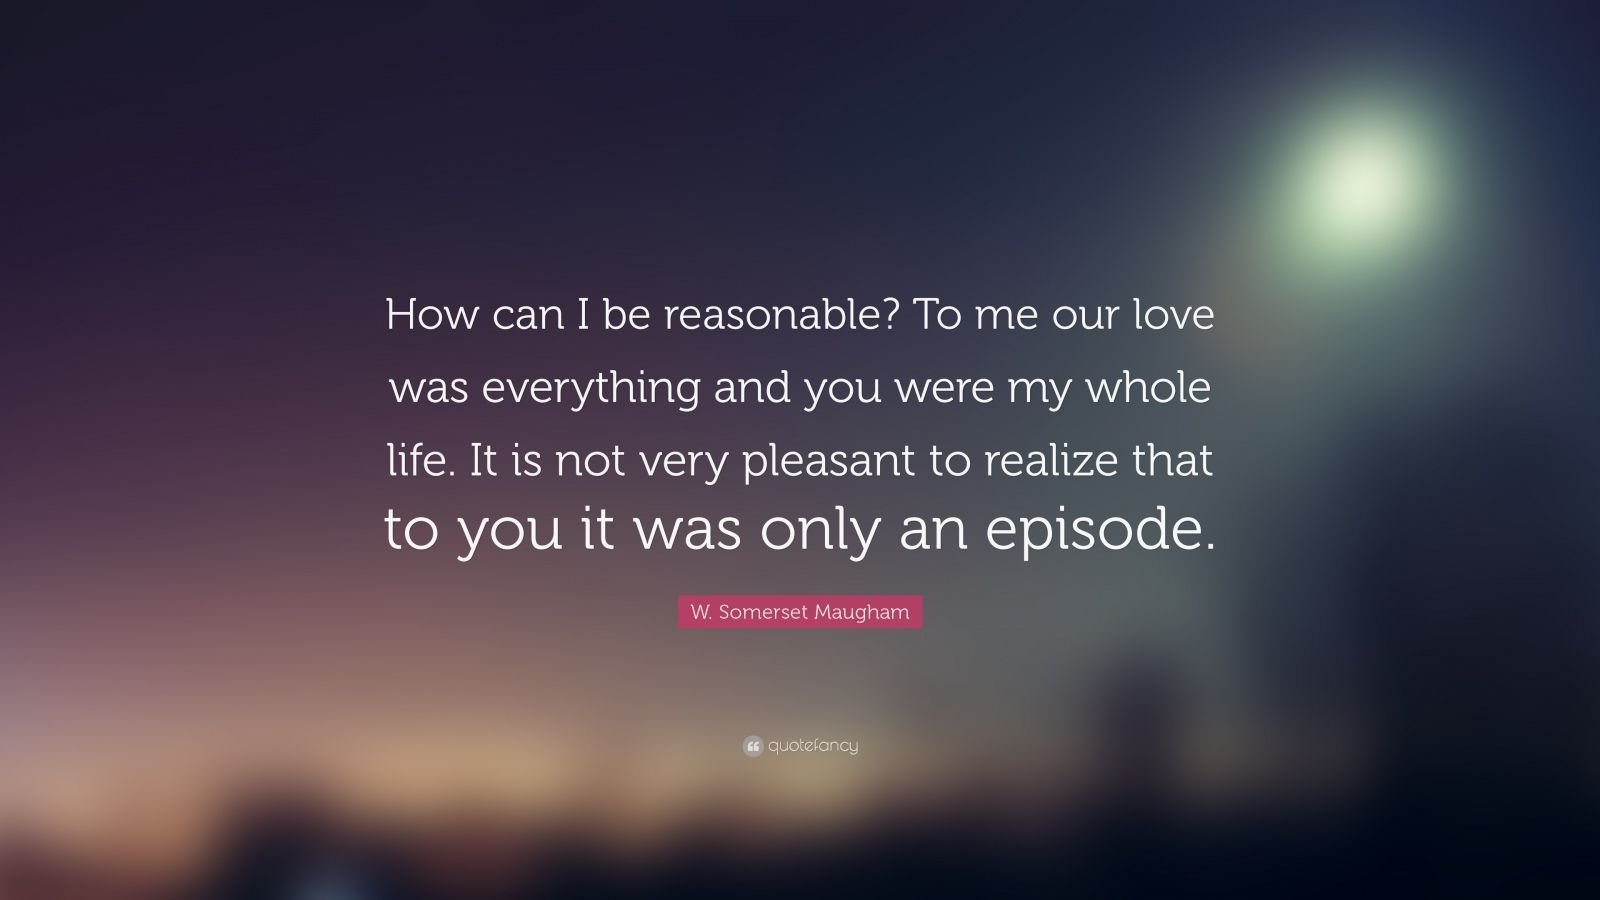 """W. Somerset Maugham Quote: """"How can I be reasonable? To me our love was everything and you were my whole life. It is not very pleasant to realize that to you it was only an episode."""""""